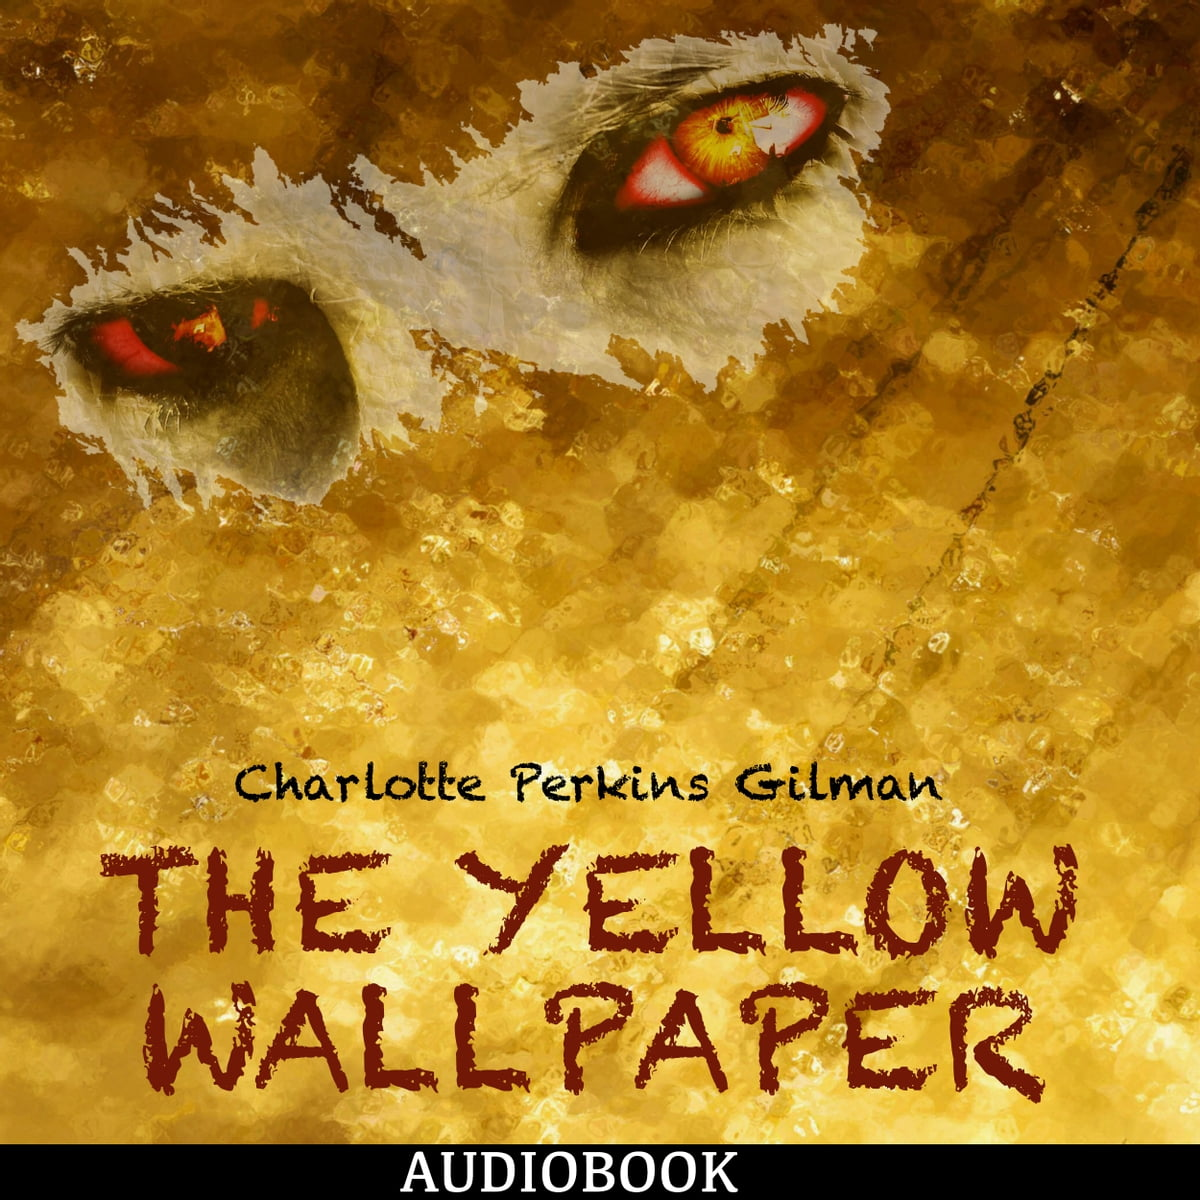 the yellow wallpaper audiobook  The Yellow Wallpaper Audiobook by Charlotte Perkins Gilman ...